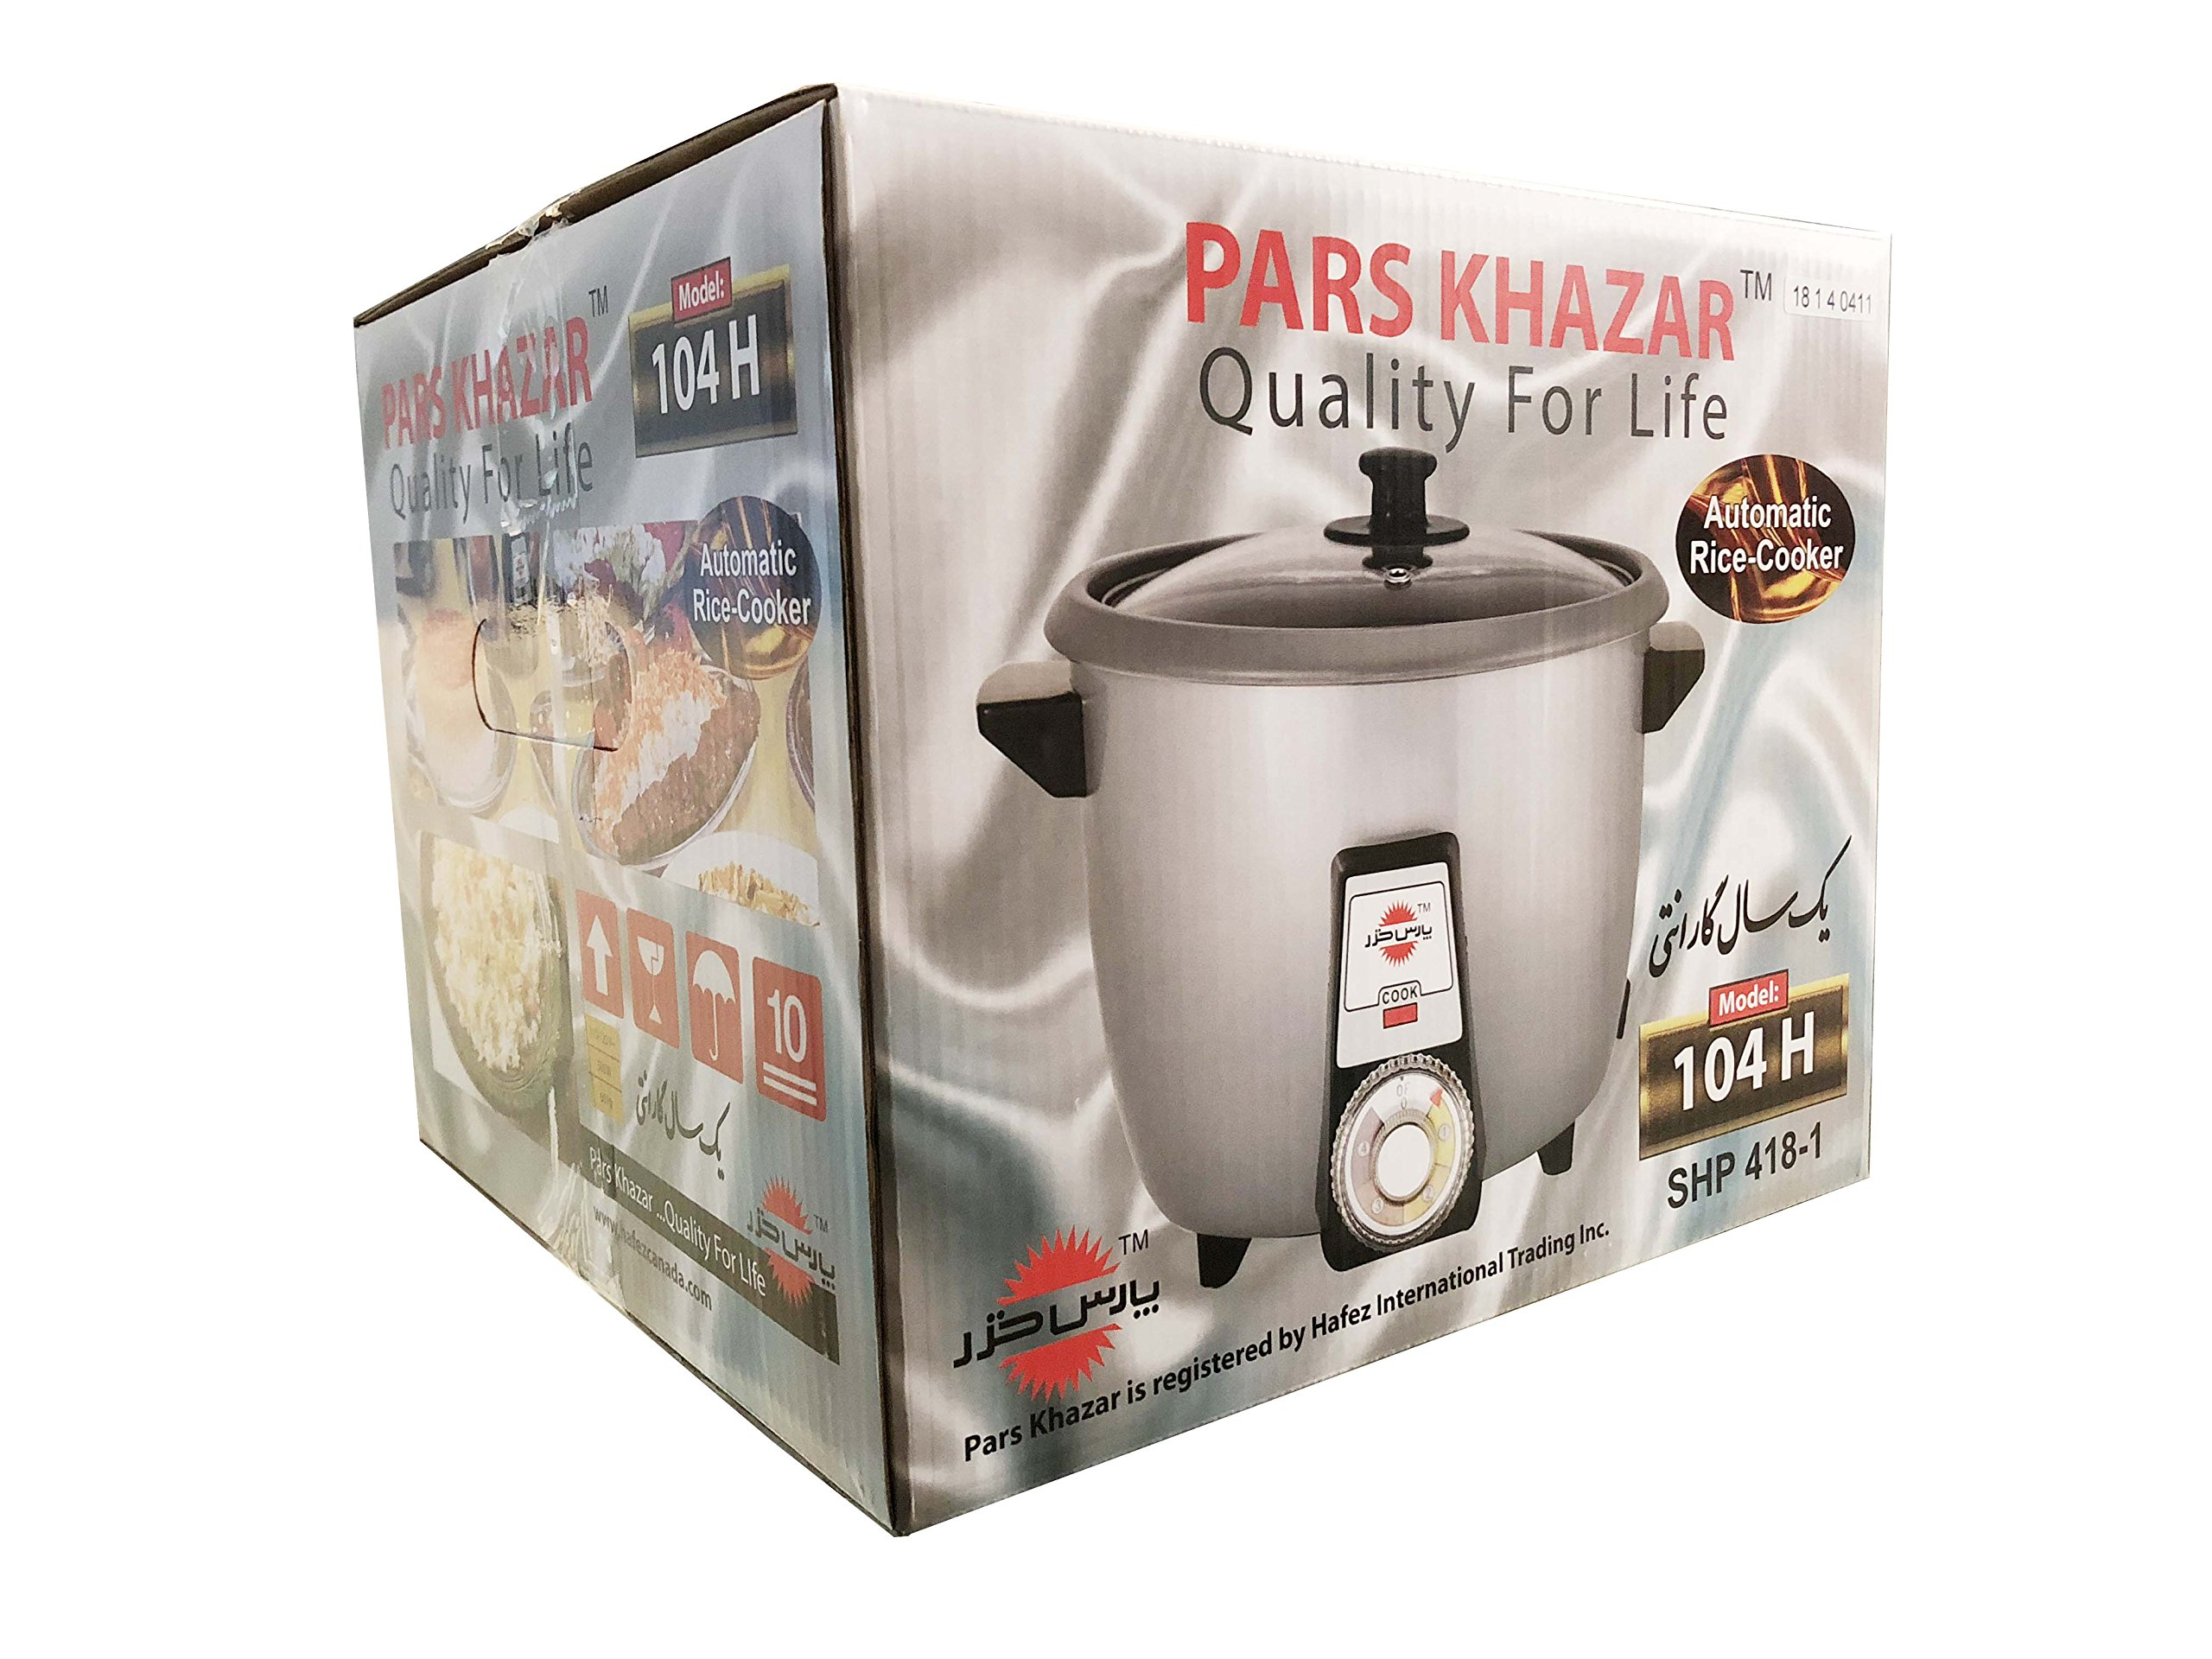 Pars Khazar Full Automatic Rice Cooker, 12 Cups (12 People) by Pars Khazar (Image #4)